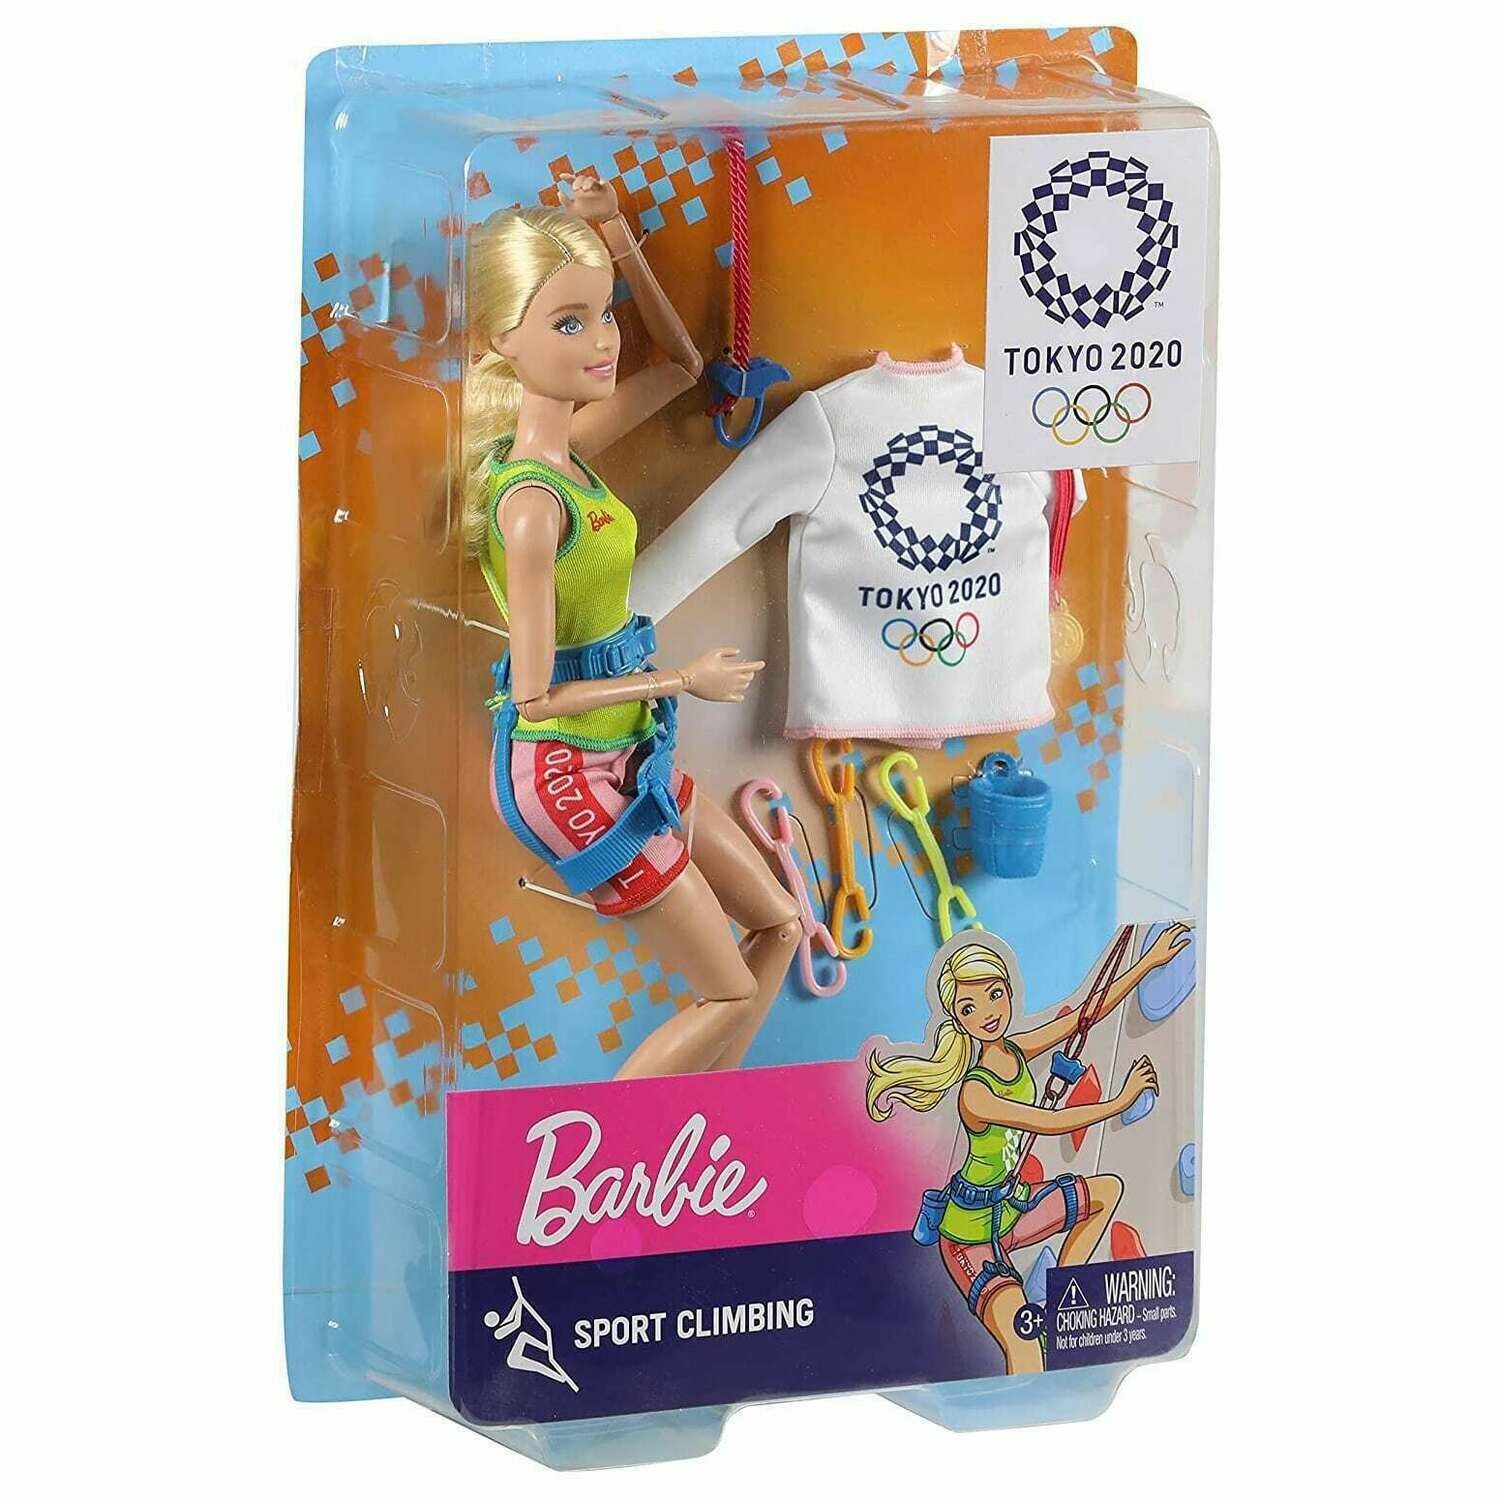 2020 Limited Edition Official Tokyo Olympic Games Sport Climbing Barbie Doll